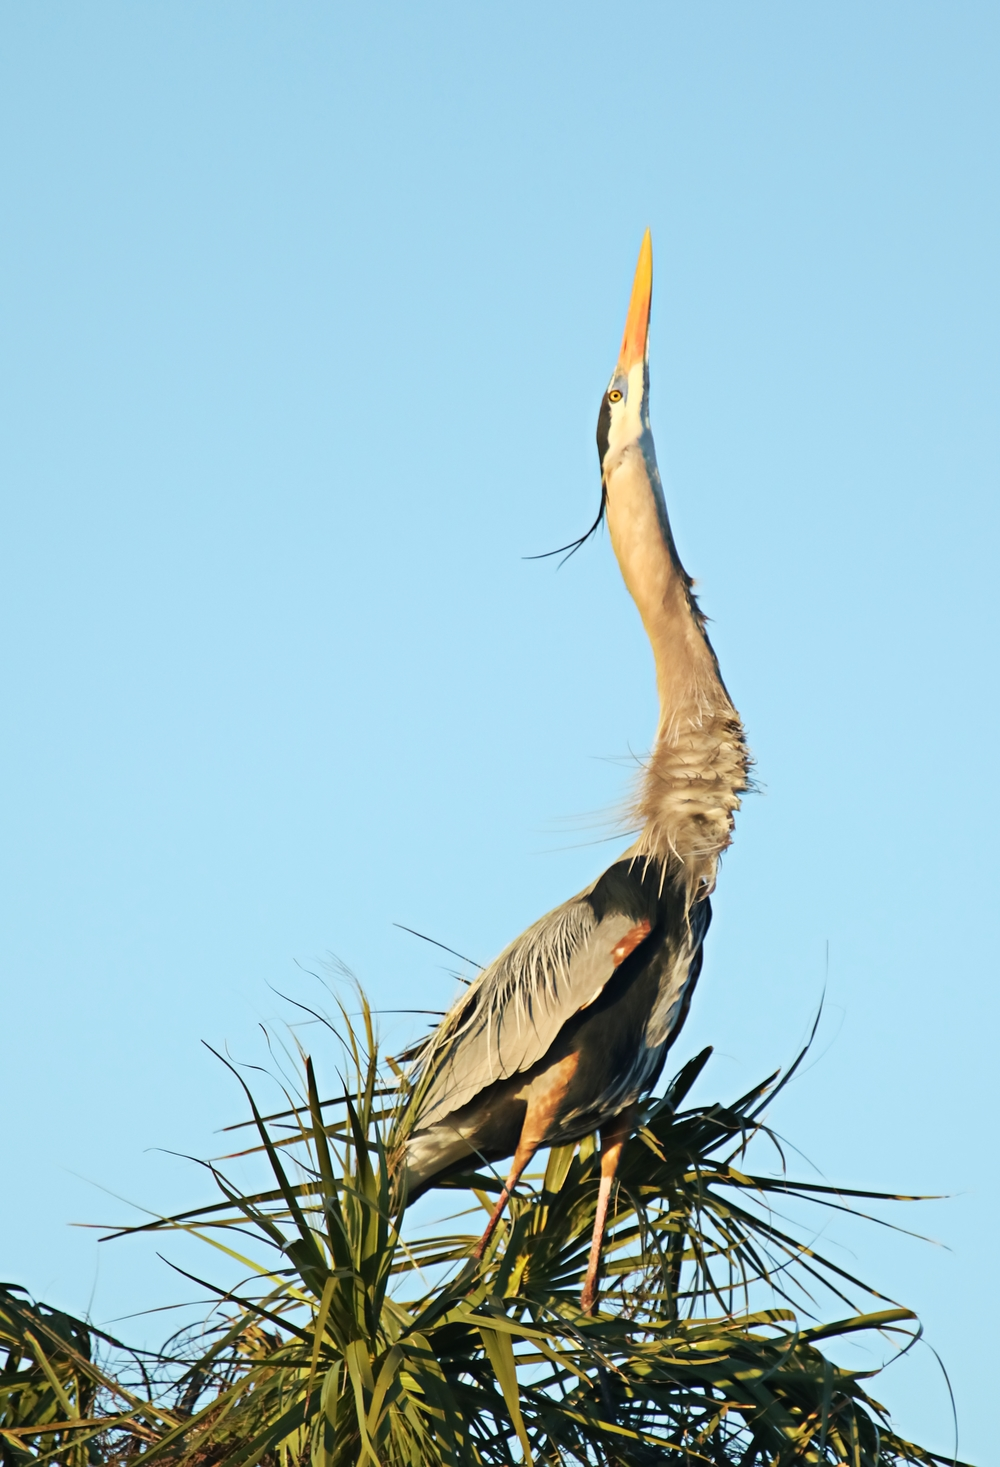 I saw this same single male Great Blue Heron in December. He is doing displays to attract a mate..so far no luck.